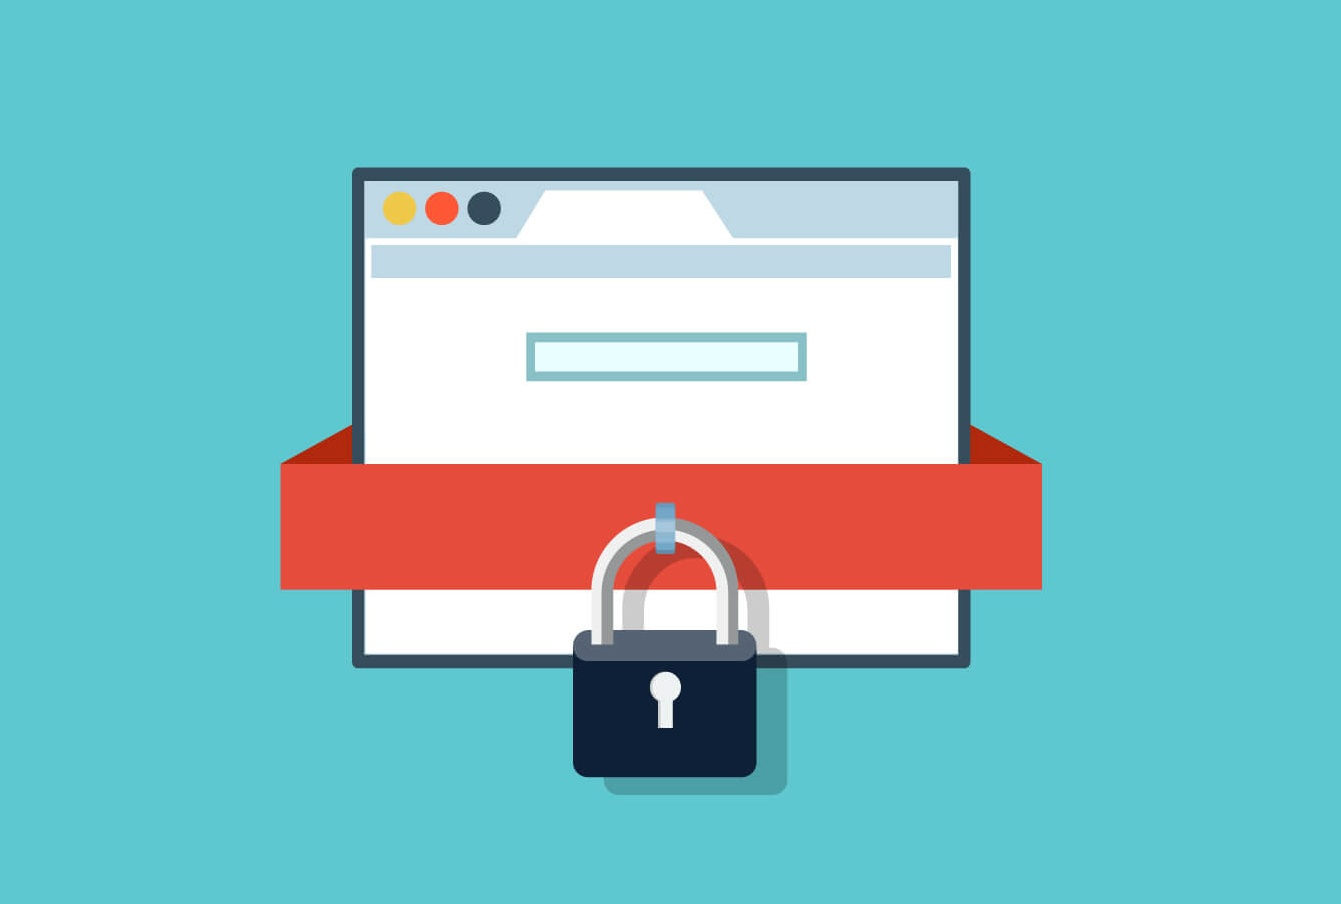 Tips and Pointers to Avoid Data Leaks